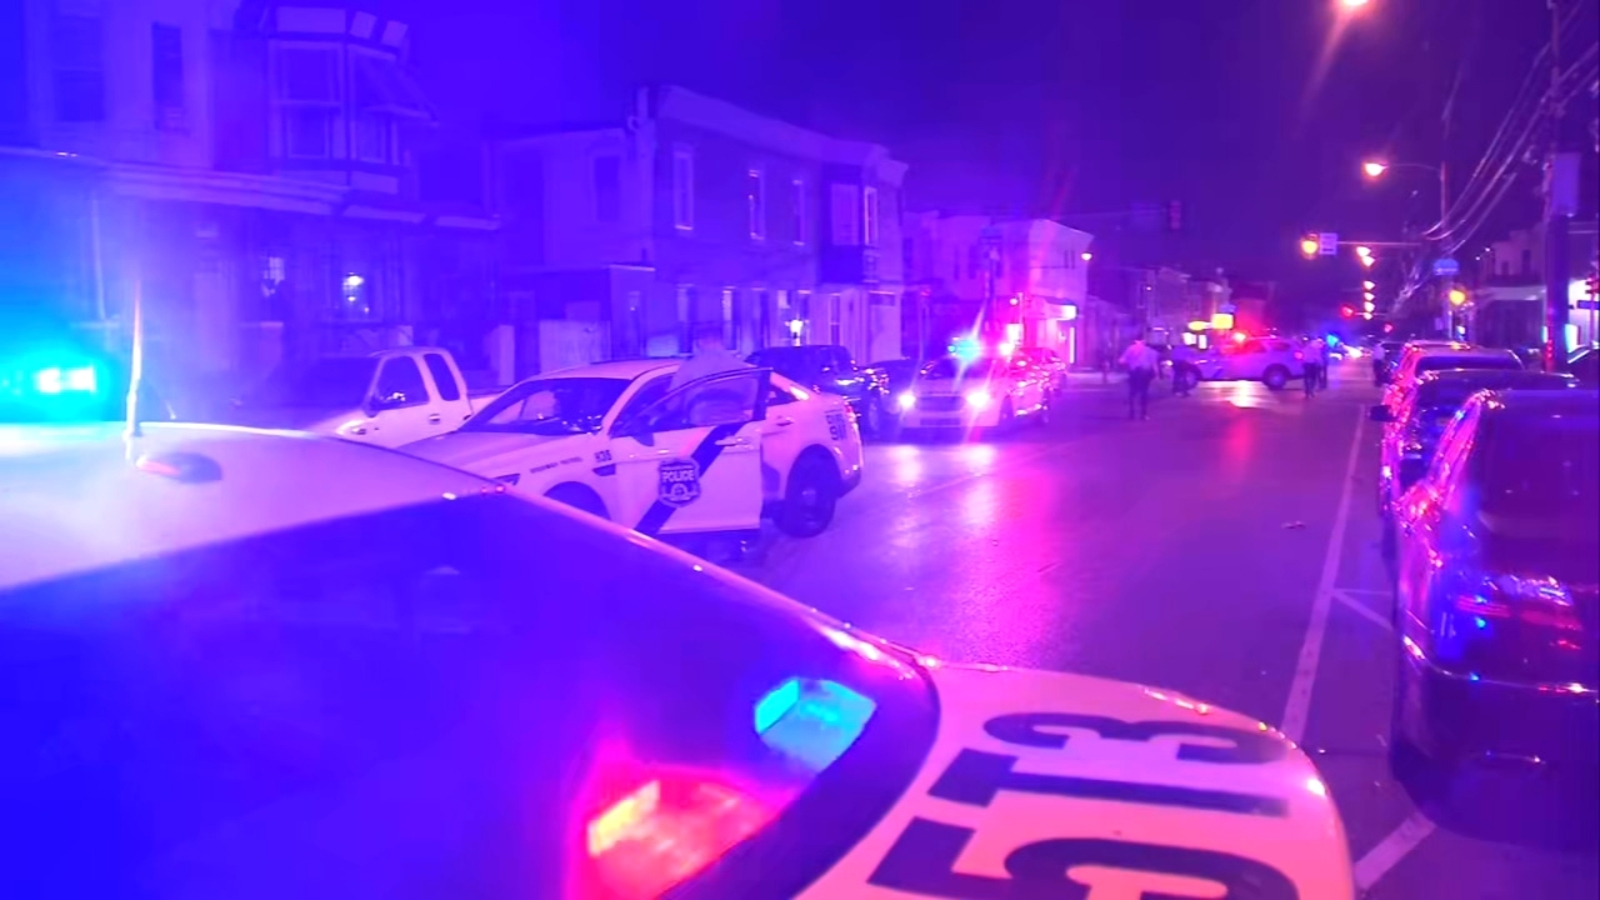 11-month-old girl shot three times, including once in the head, Philadelphia police say